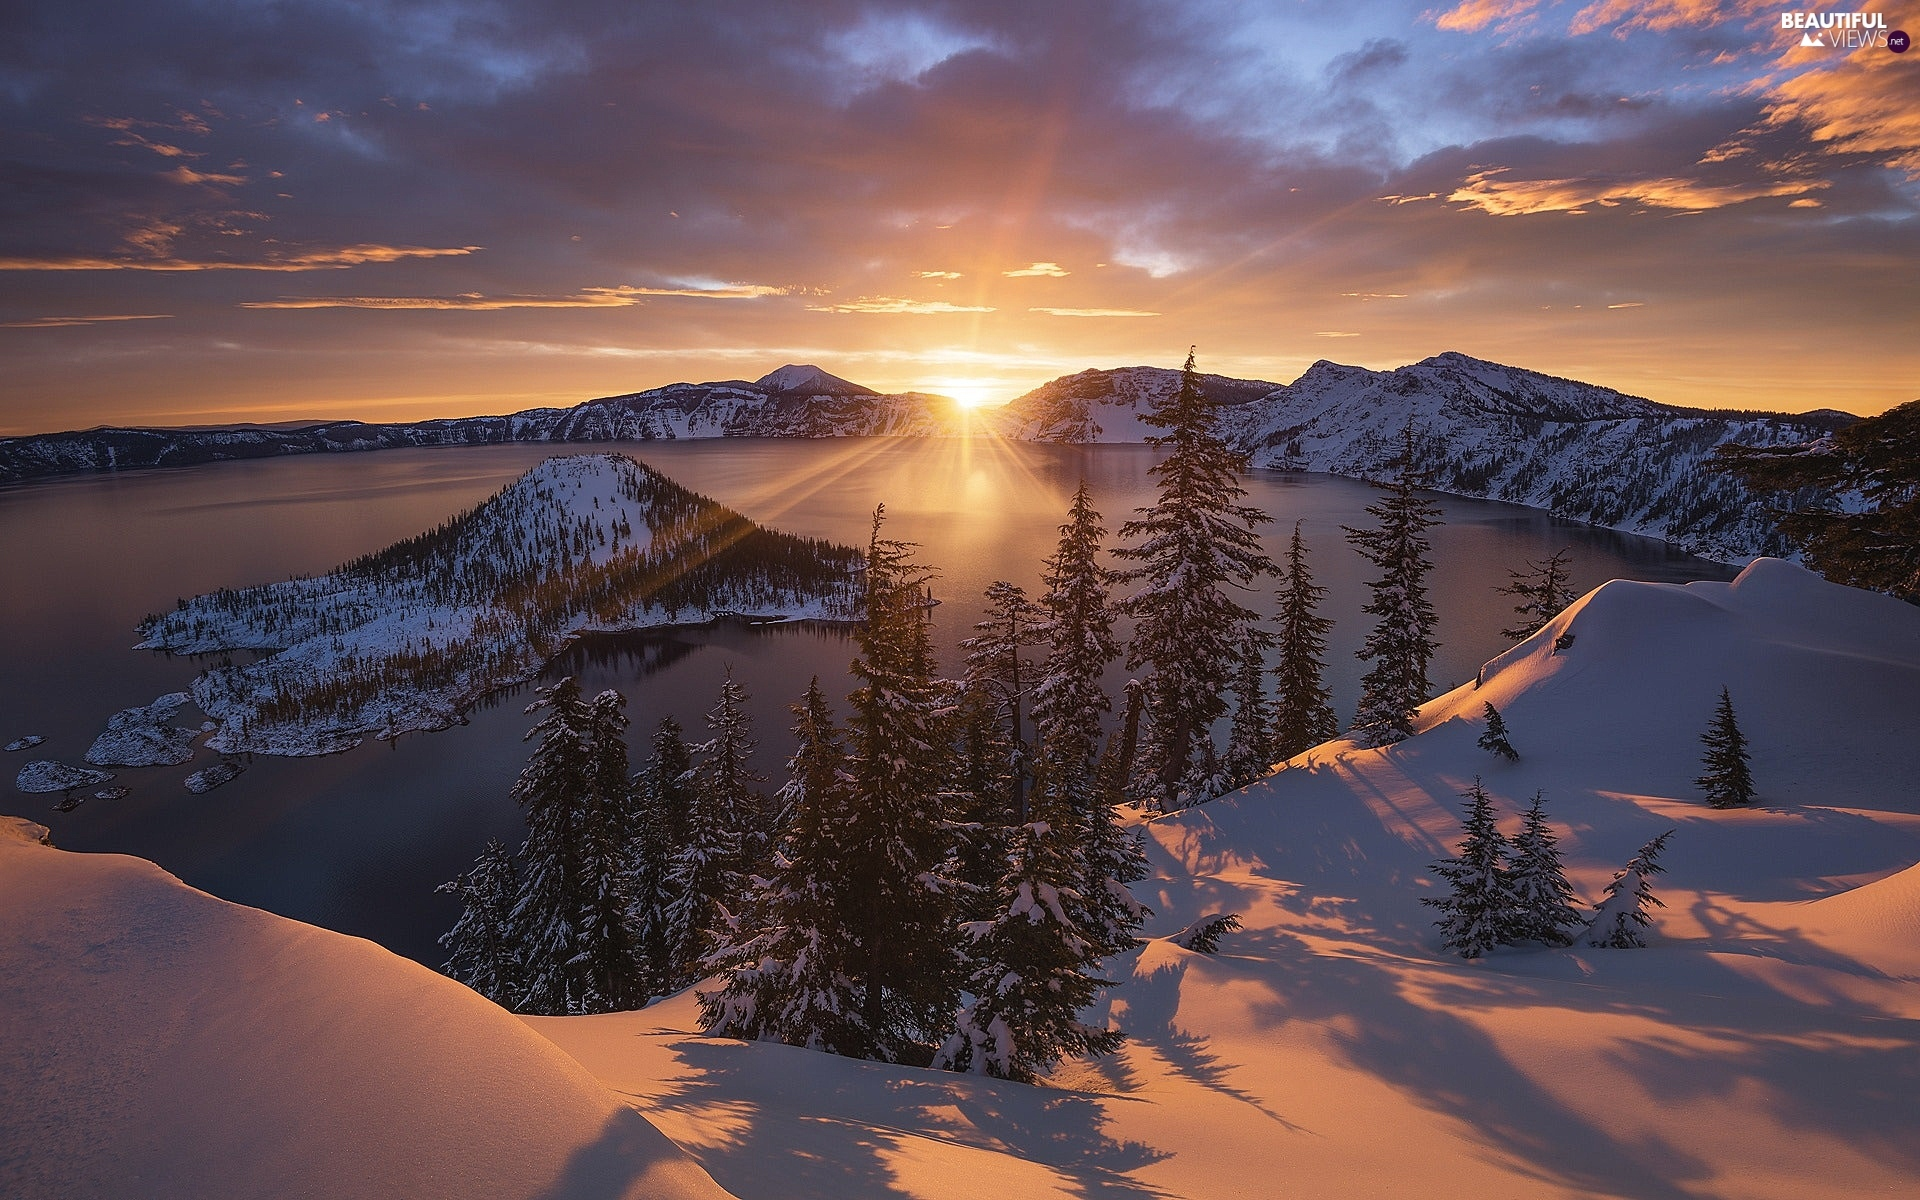 lake, winter, viewes, Great Sunsets, trees, Mountains